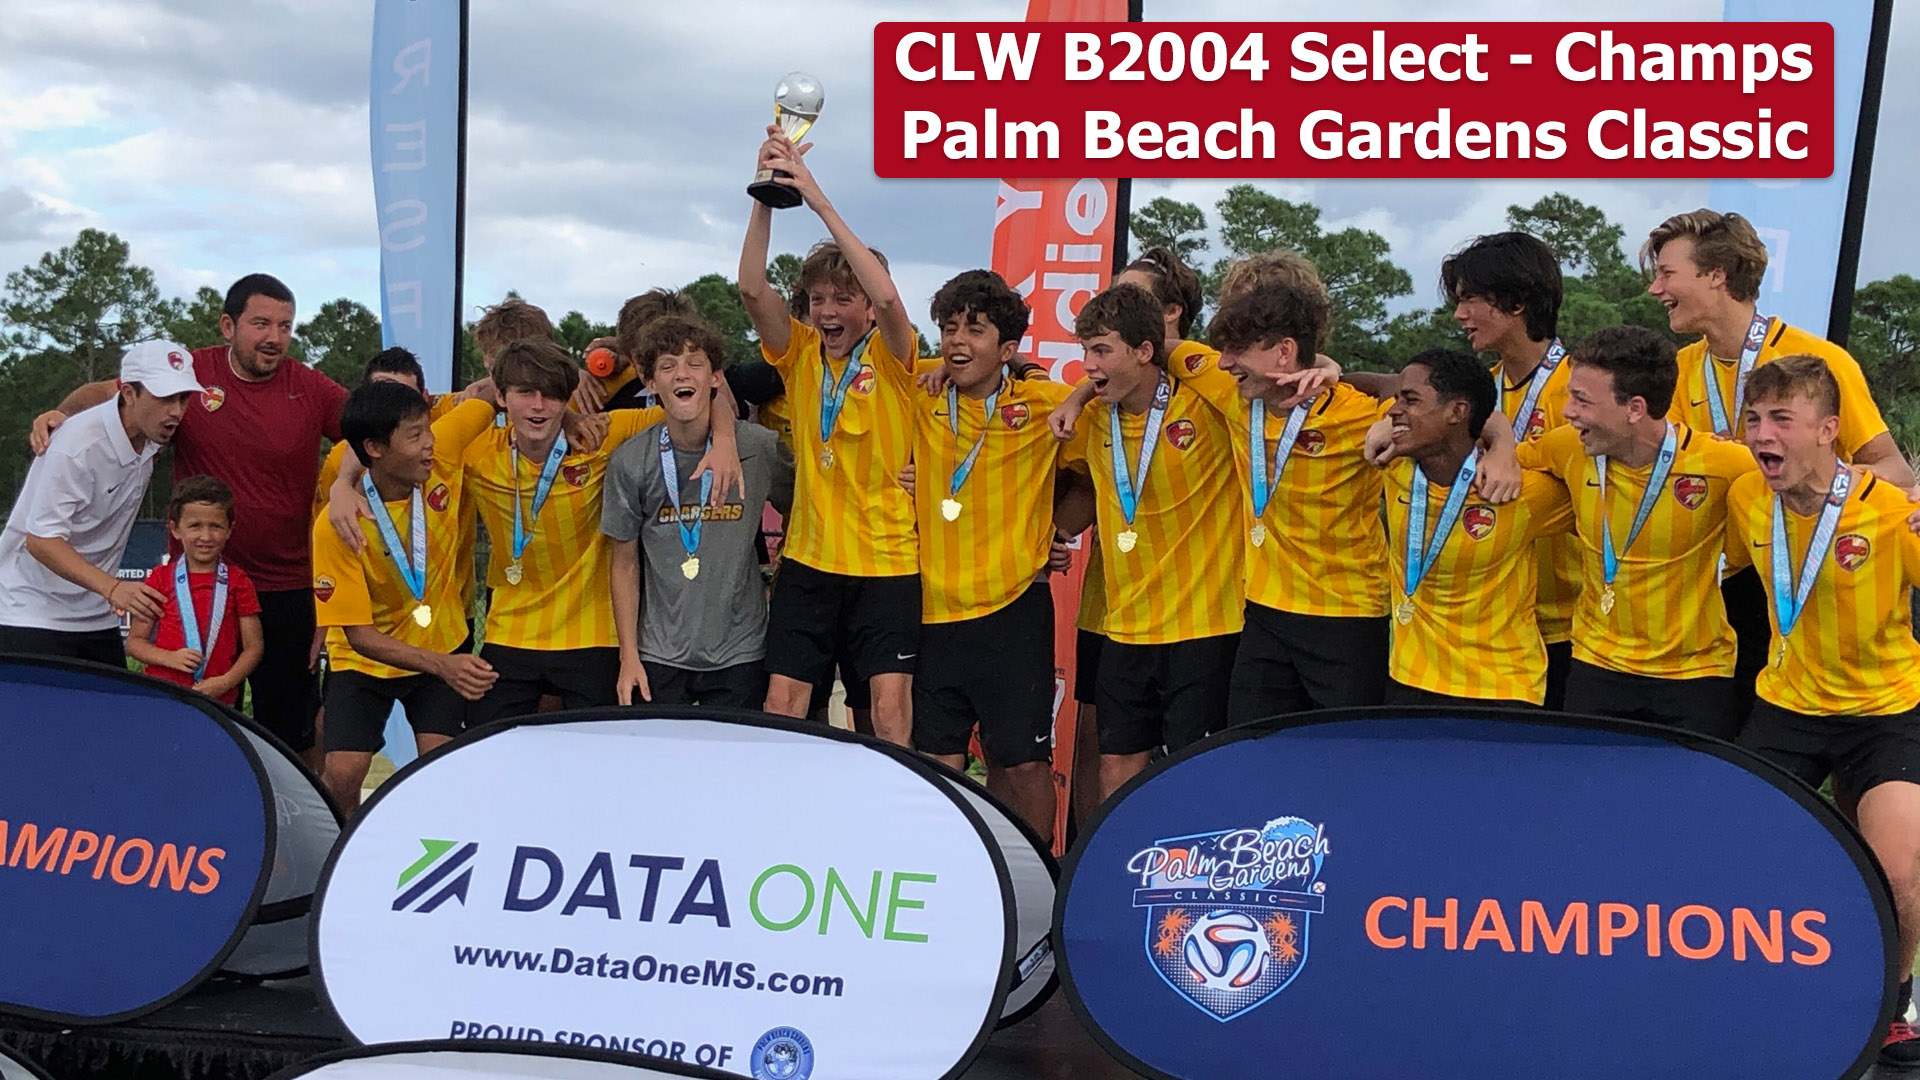 CLW B2004 Select - PBG Champs